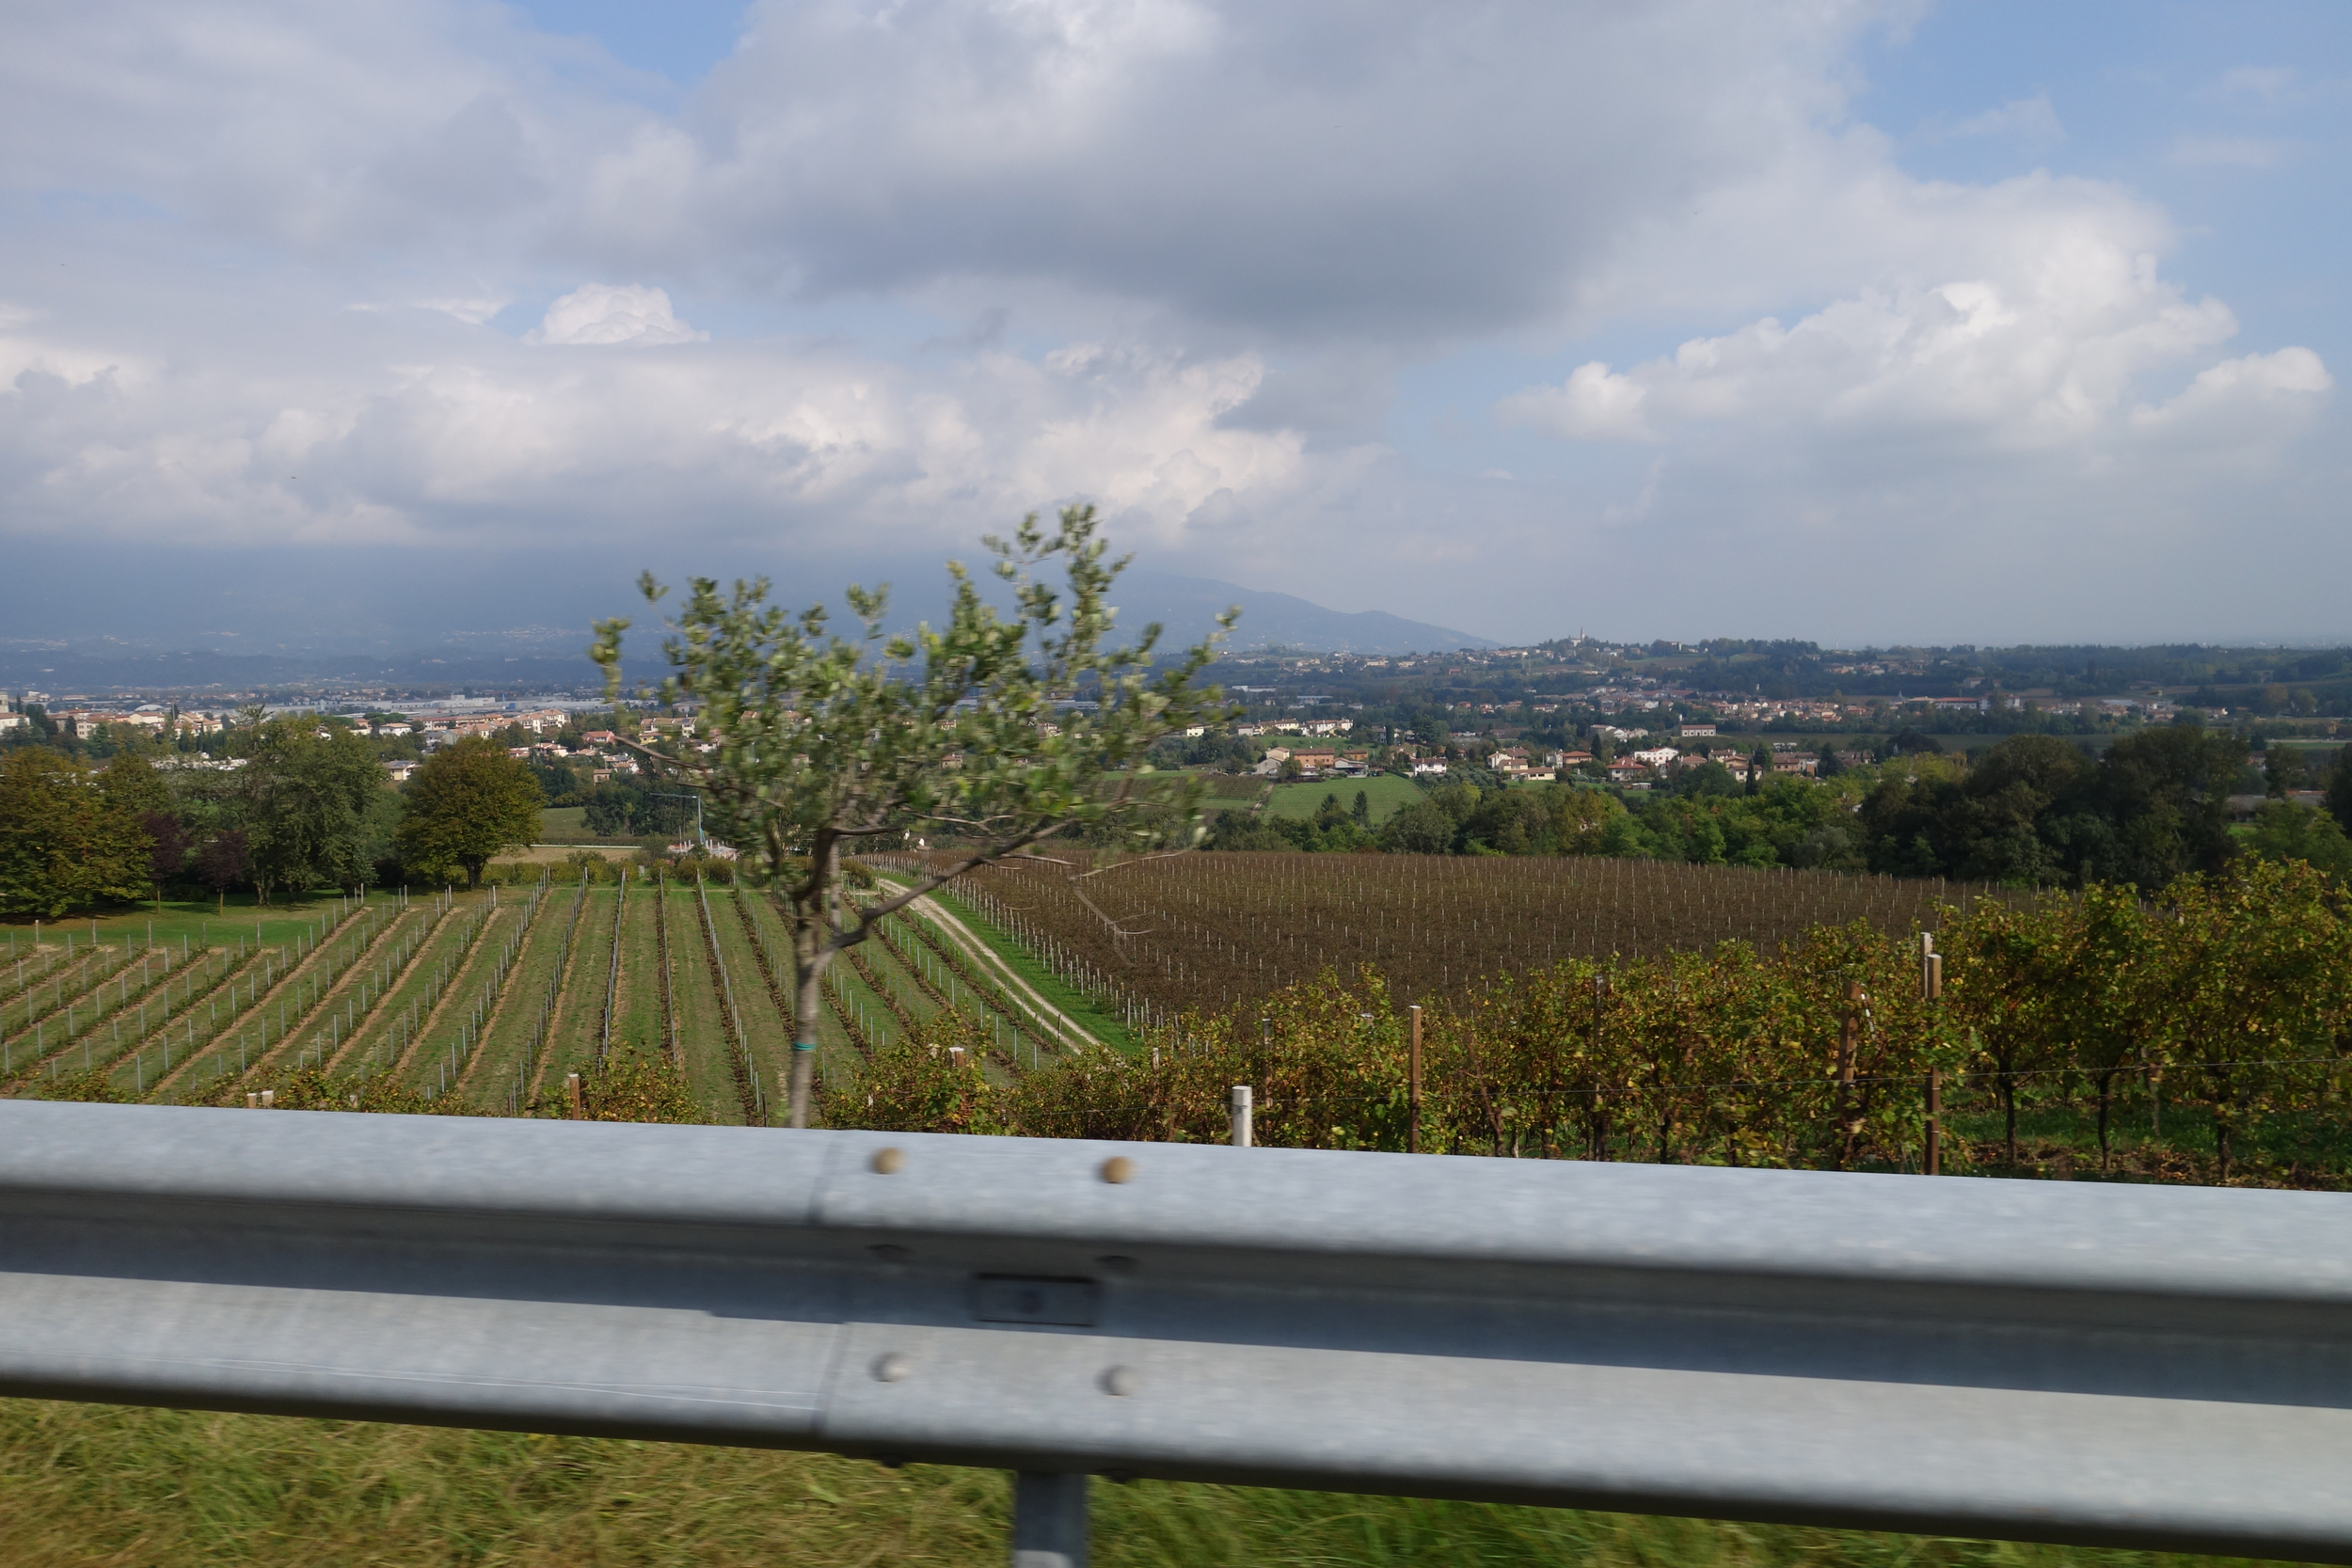 Winding back through the Alp foothill wine regions after a lost luggage run back to the Venice airport.